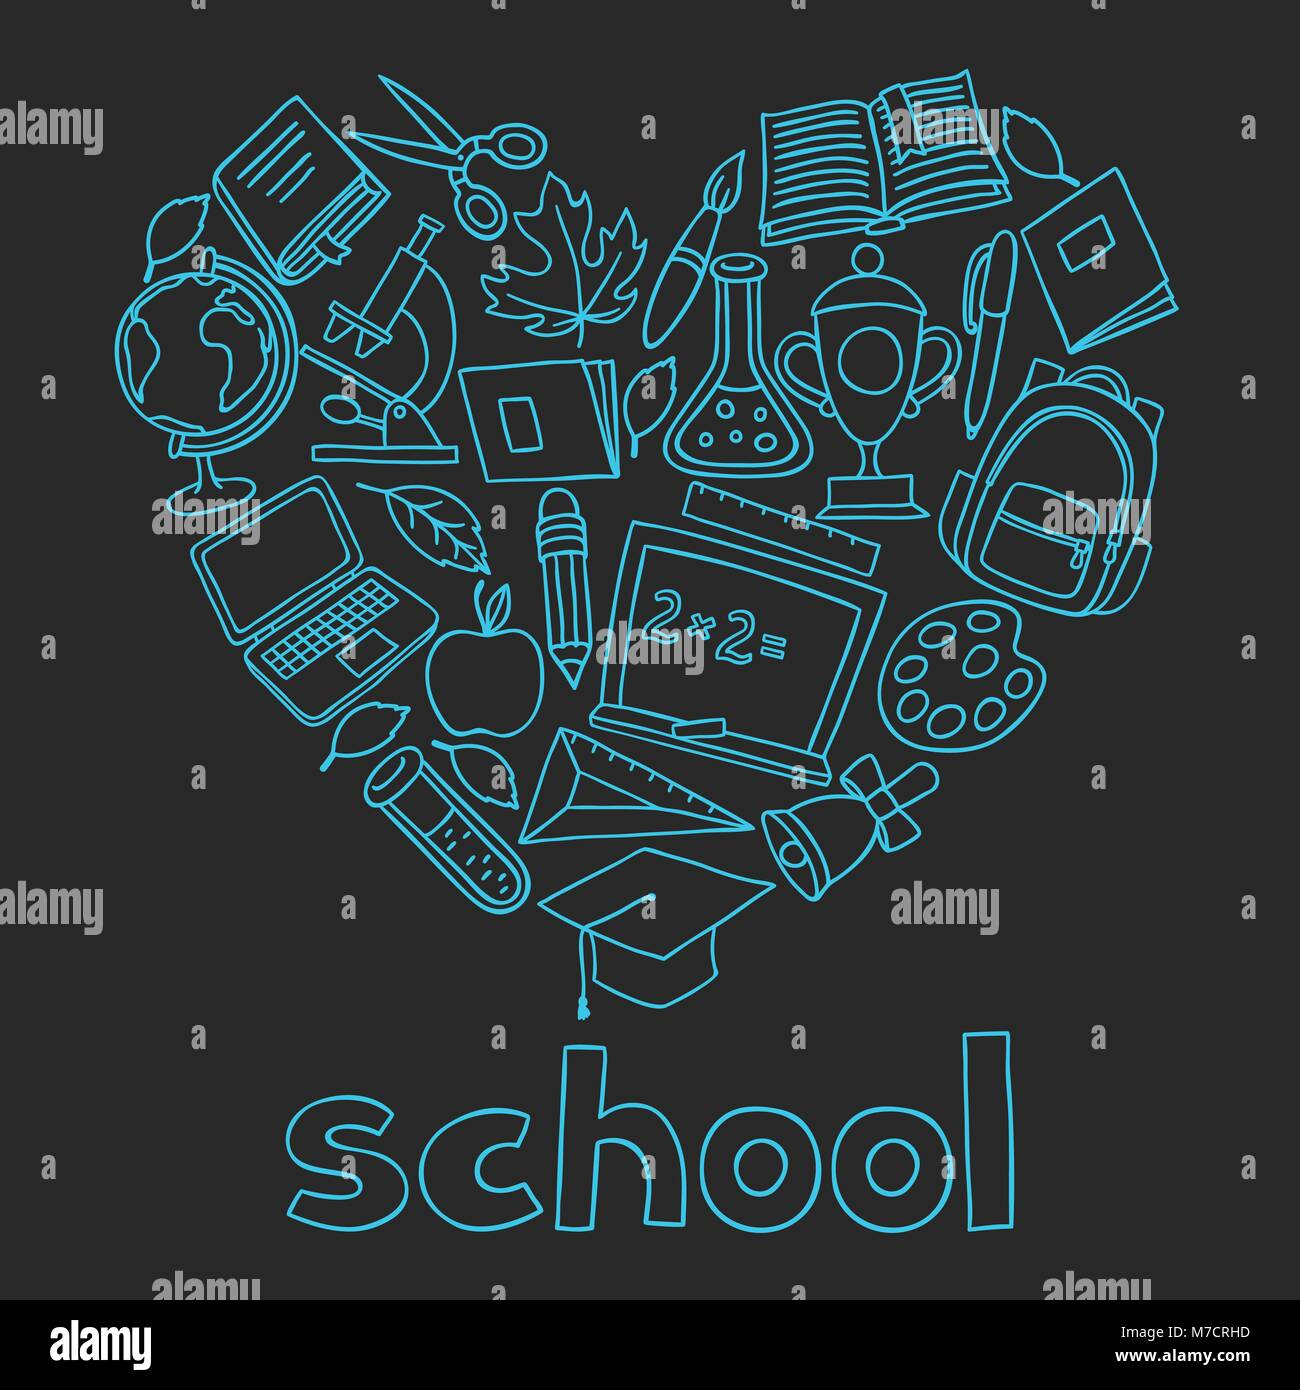 School background with hand drawn icons on chalk board - Stock Image